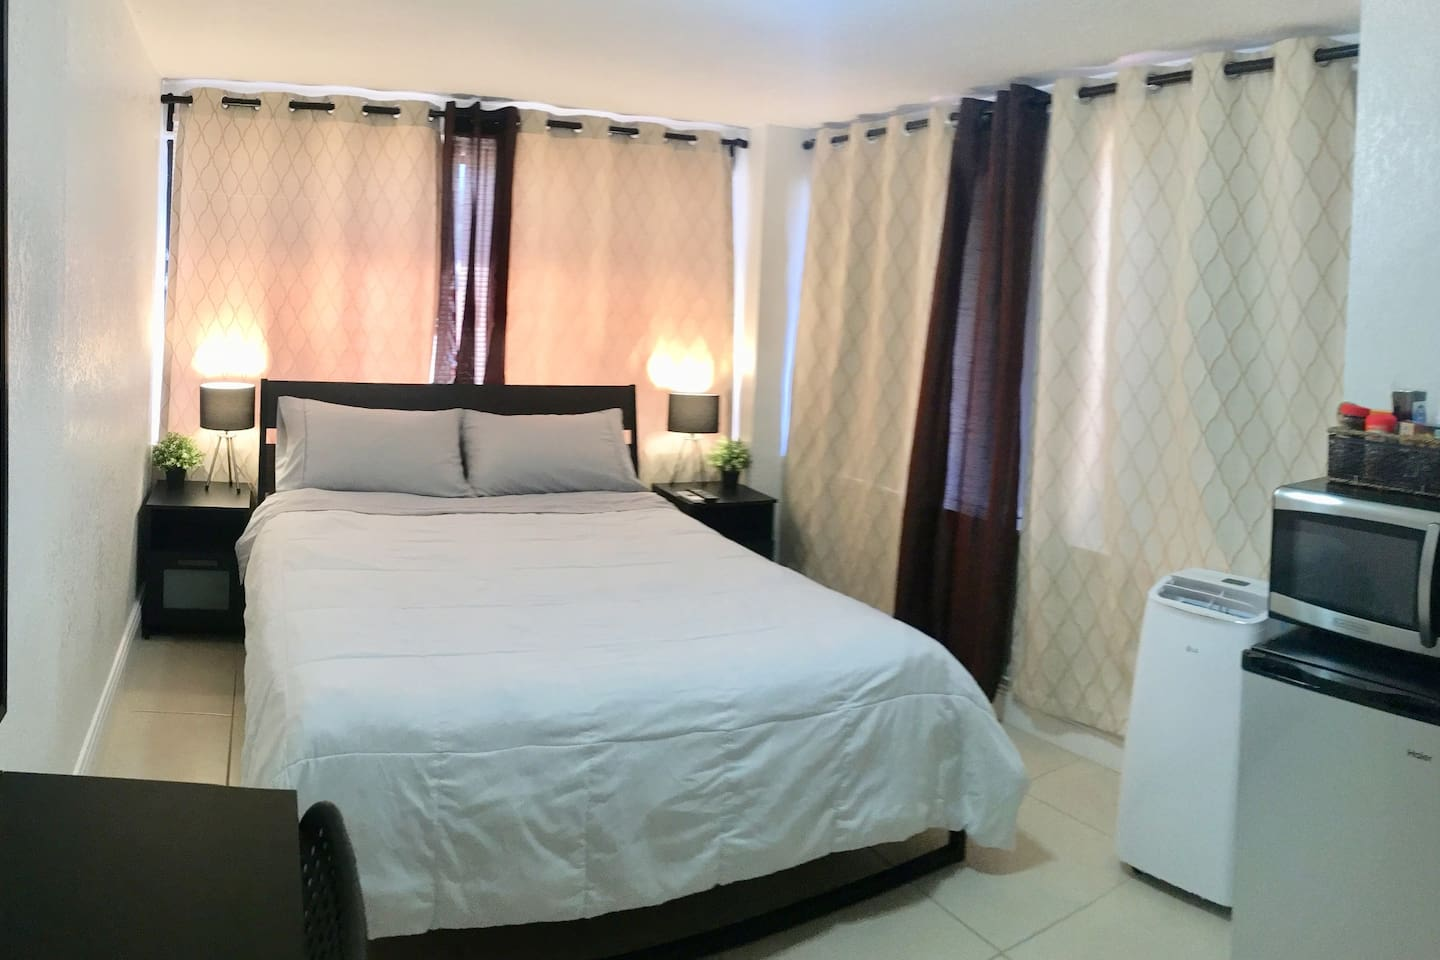 Queen Bed, sitting area, AC unit small refrigerator, microwave and a kettle